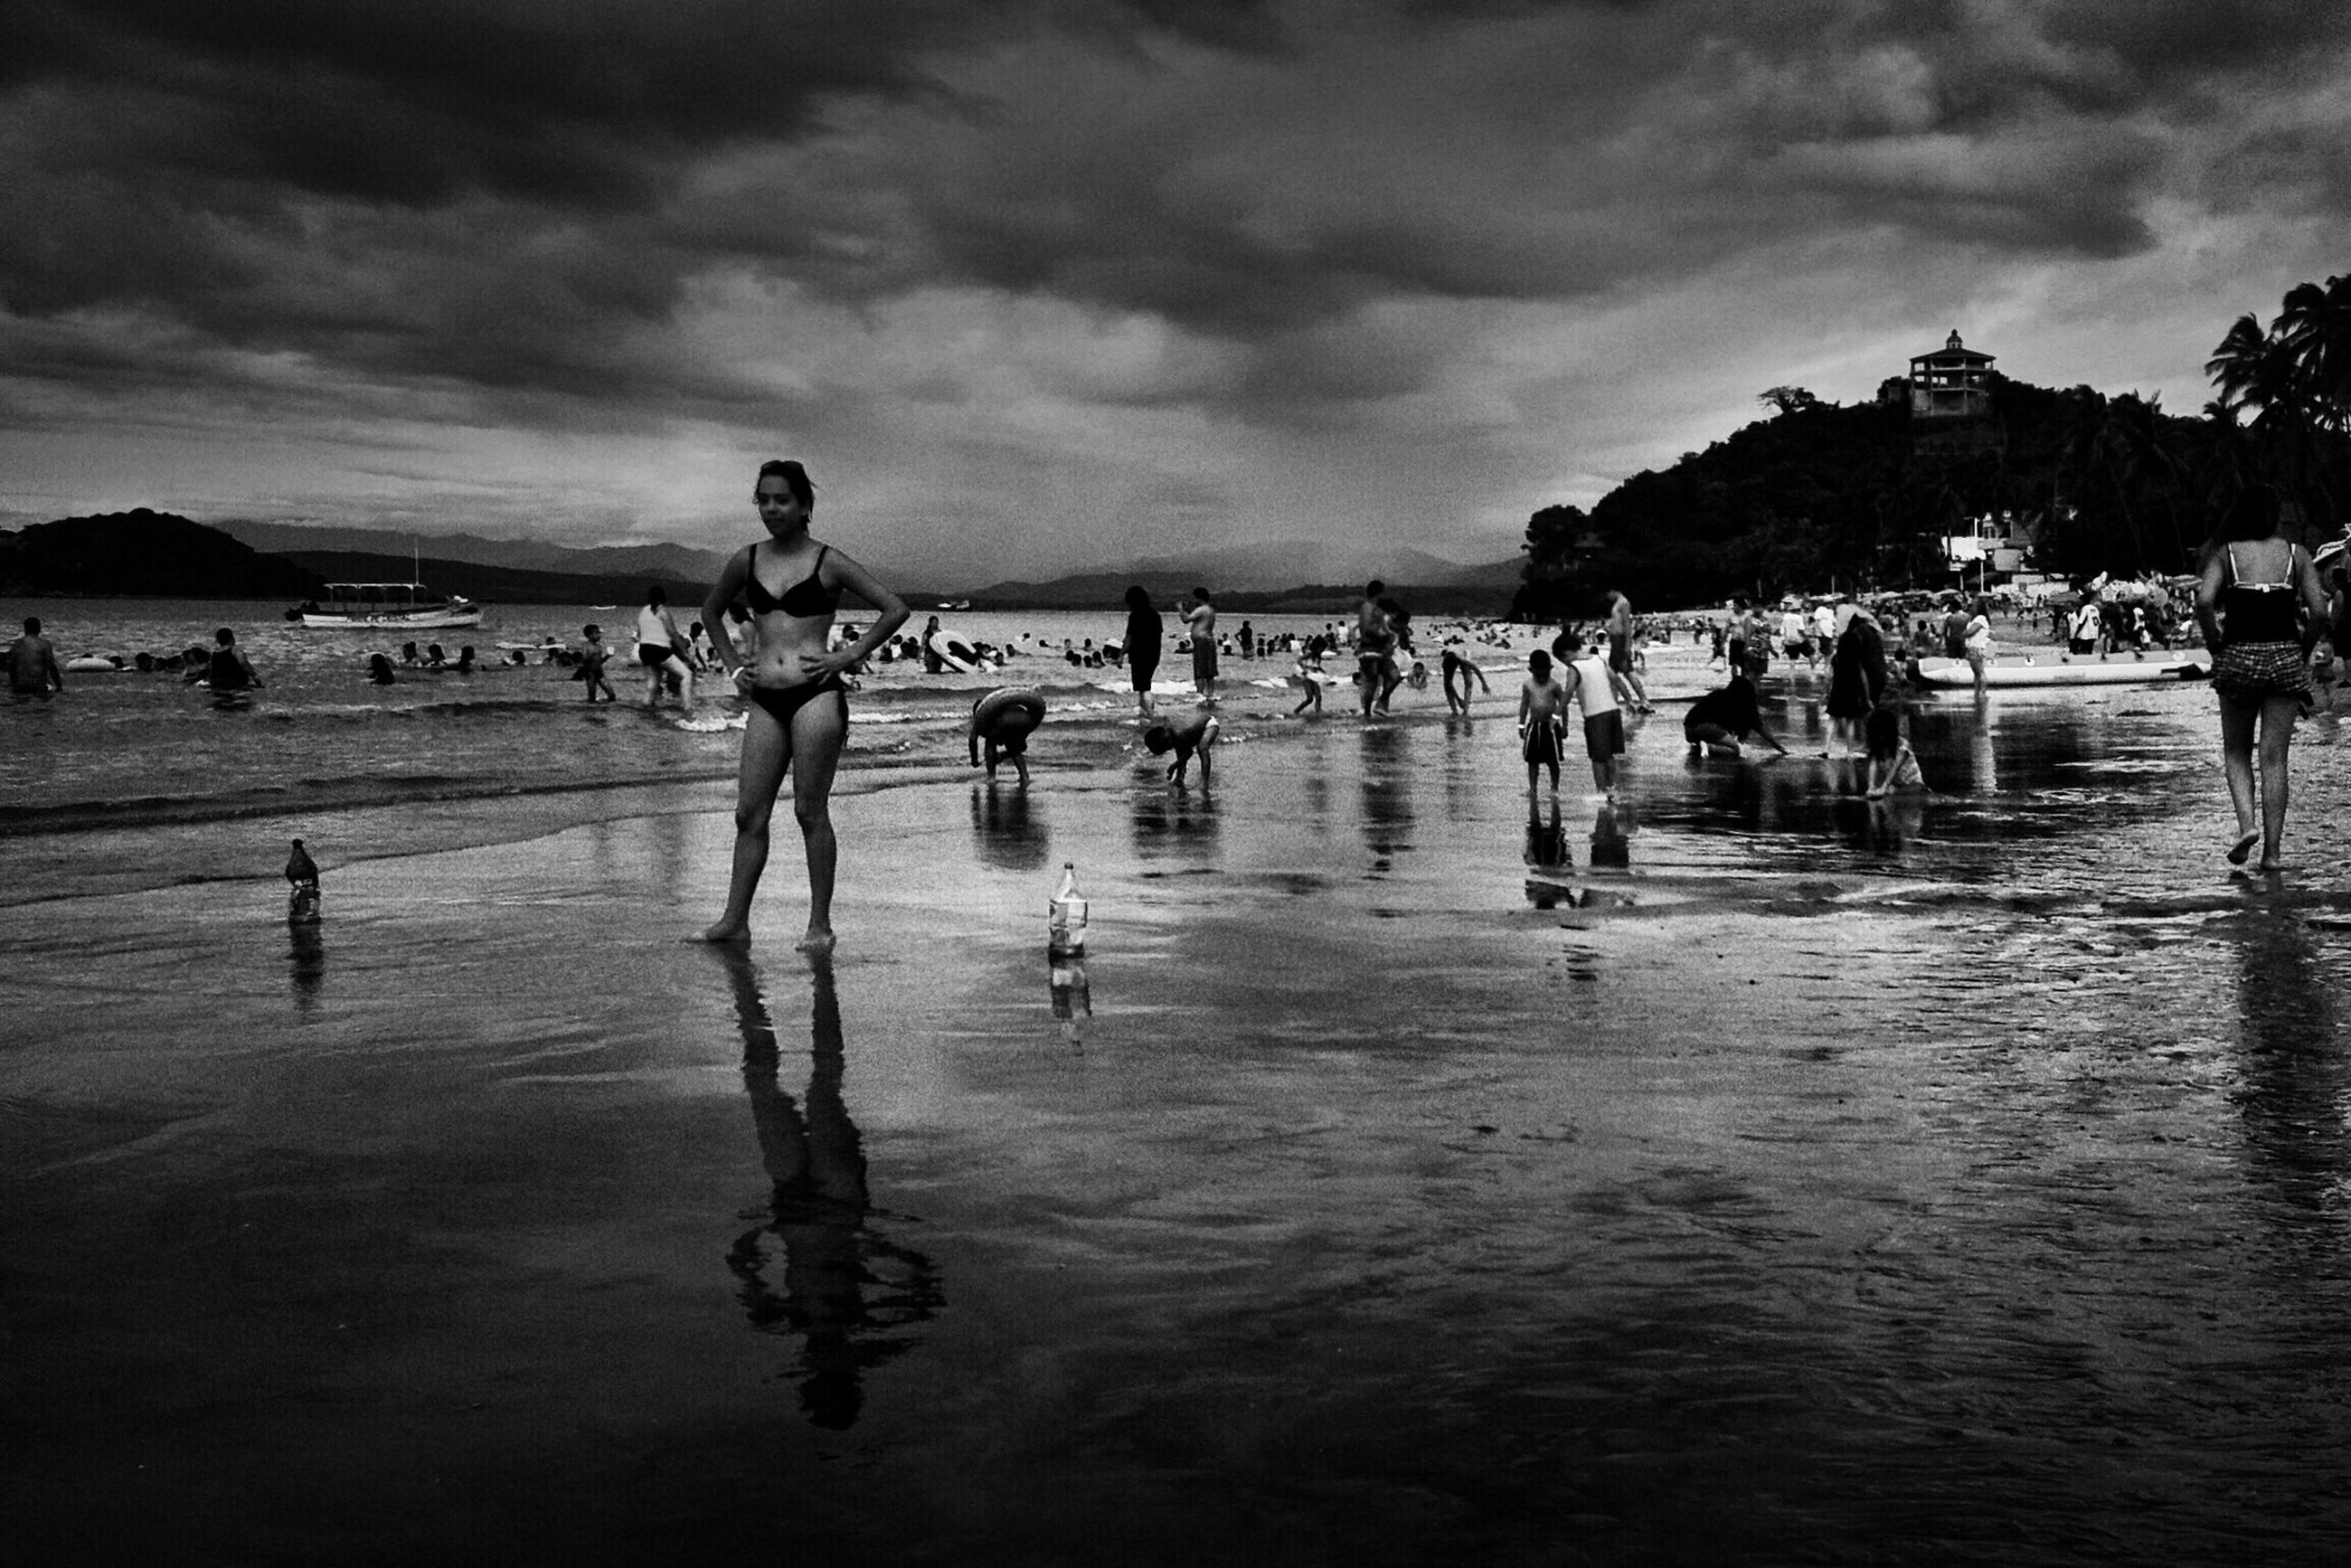 water, sky, sea, cloud - sky, shore, cloudy, cloud, nature, vacations, scenics, leisure activity, lifestyles, tranquility, beauty in nature, tranquil scene, outdoors, day, mixed age range, coastline, tourism, overcast, travel destinations, idyllic